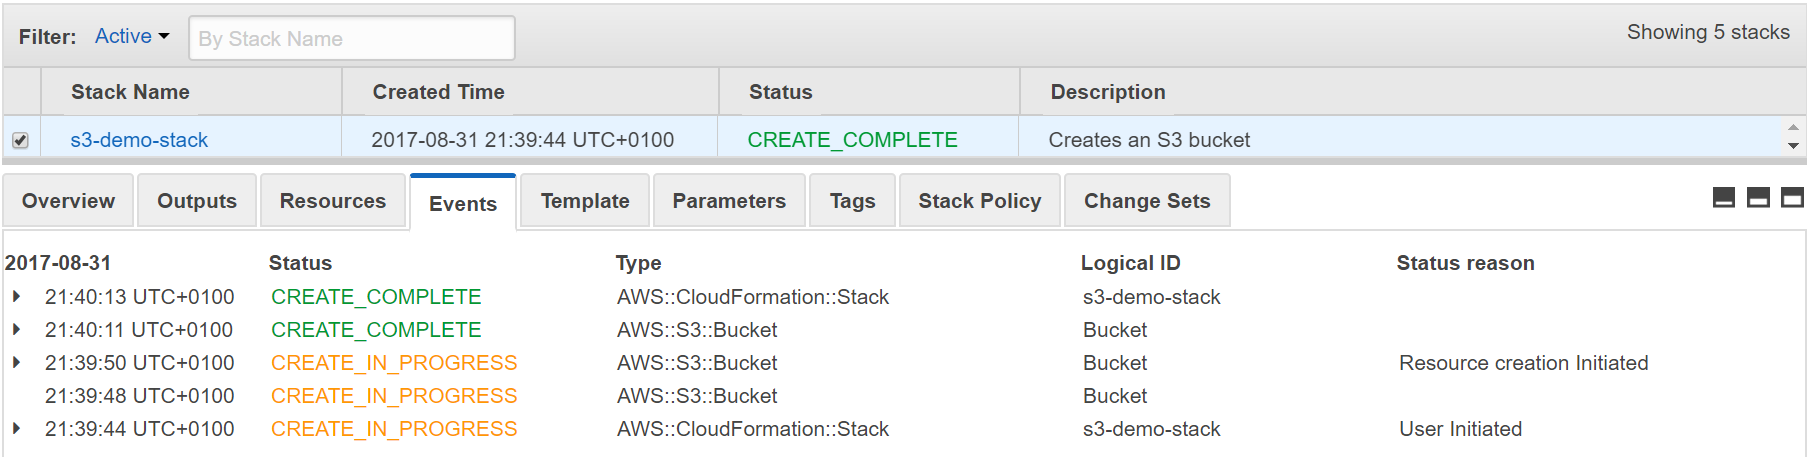 console output of deployed CloudFormation stack